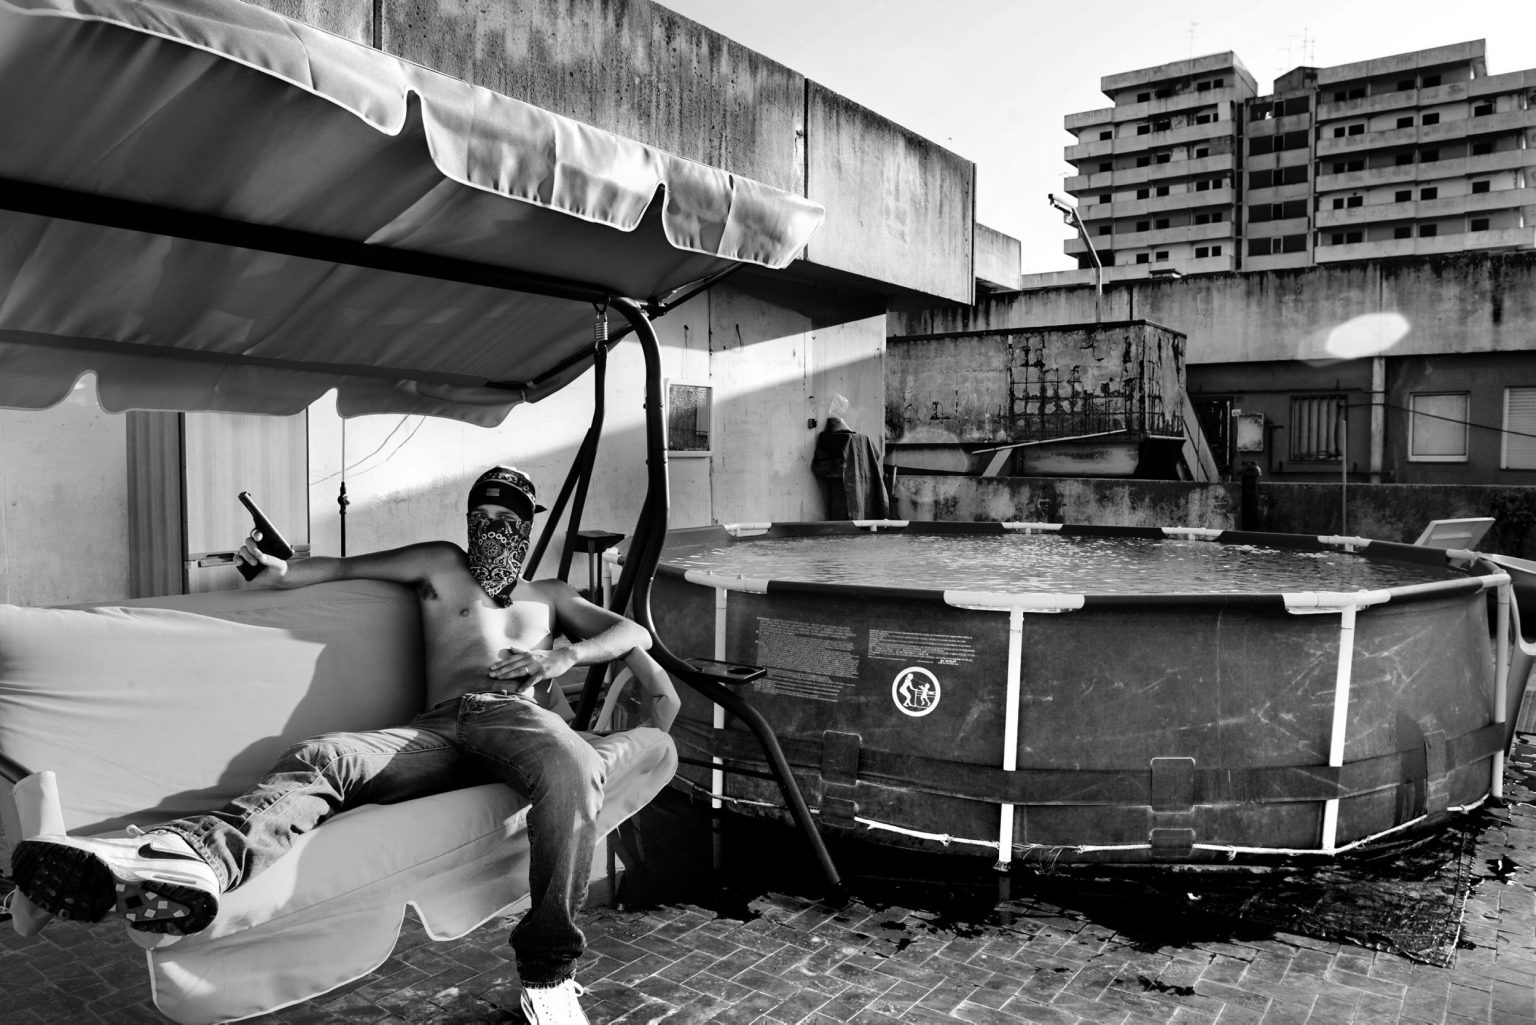 """Portrait of a drug dealer with his gun 7,65 on the top of """"The Sails"""" a particular building so called for their shape. Scampia neighborhood. Naples, Italy, 2009"""